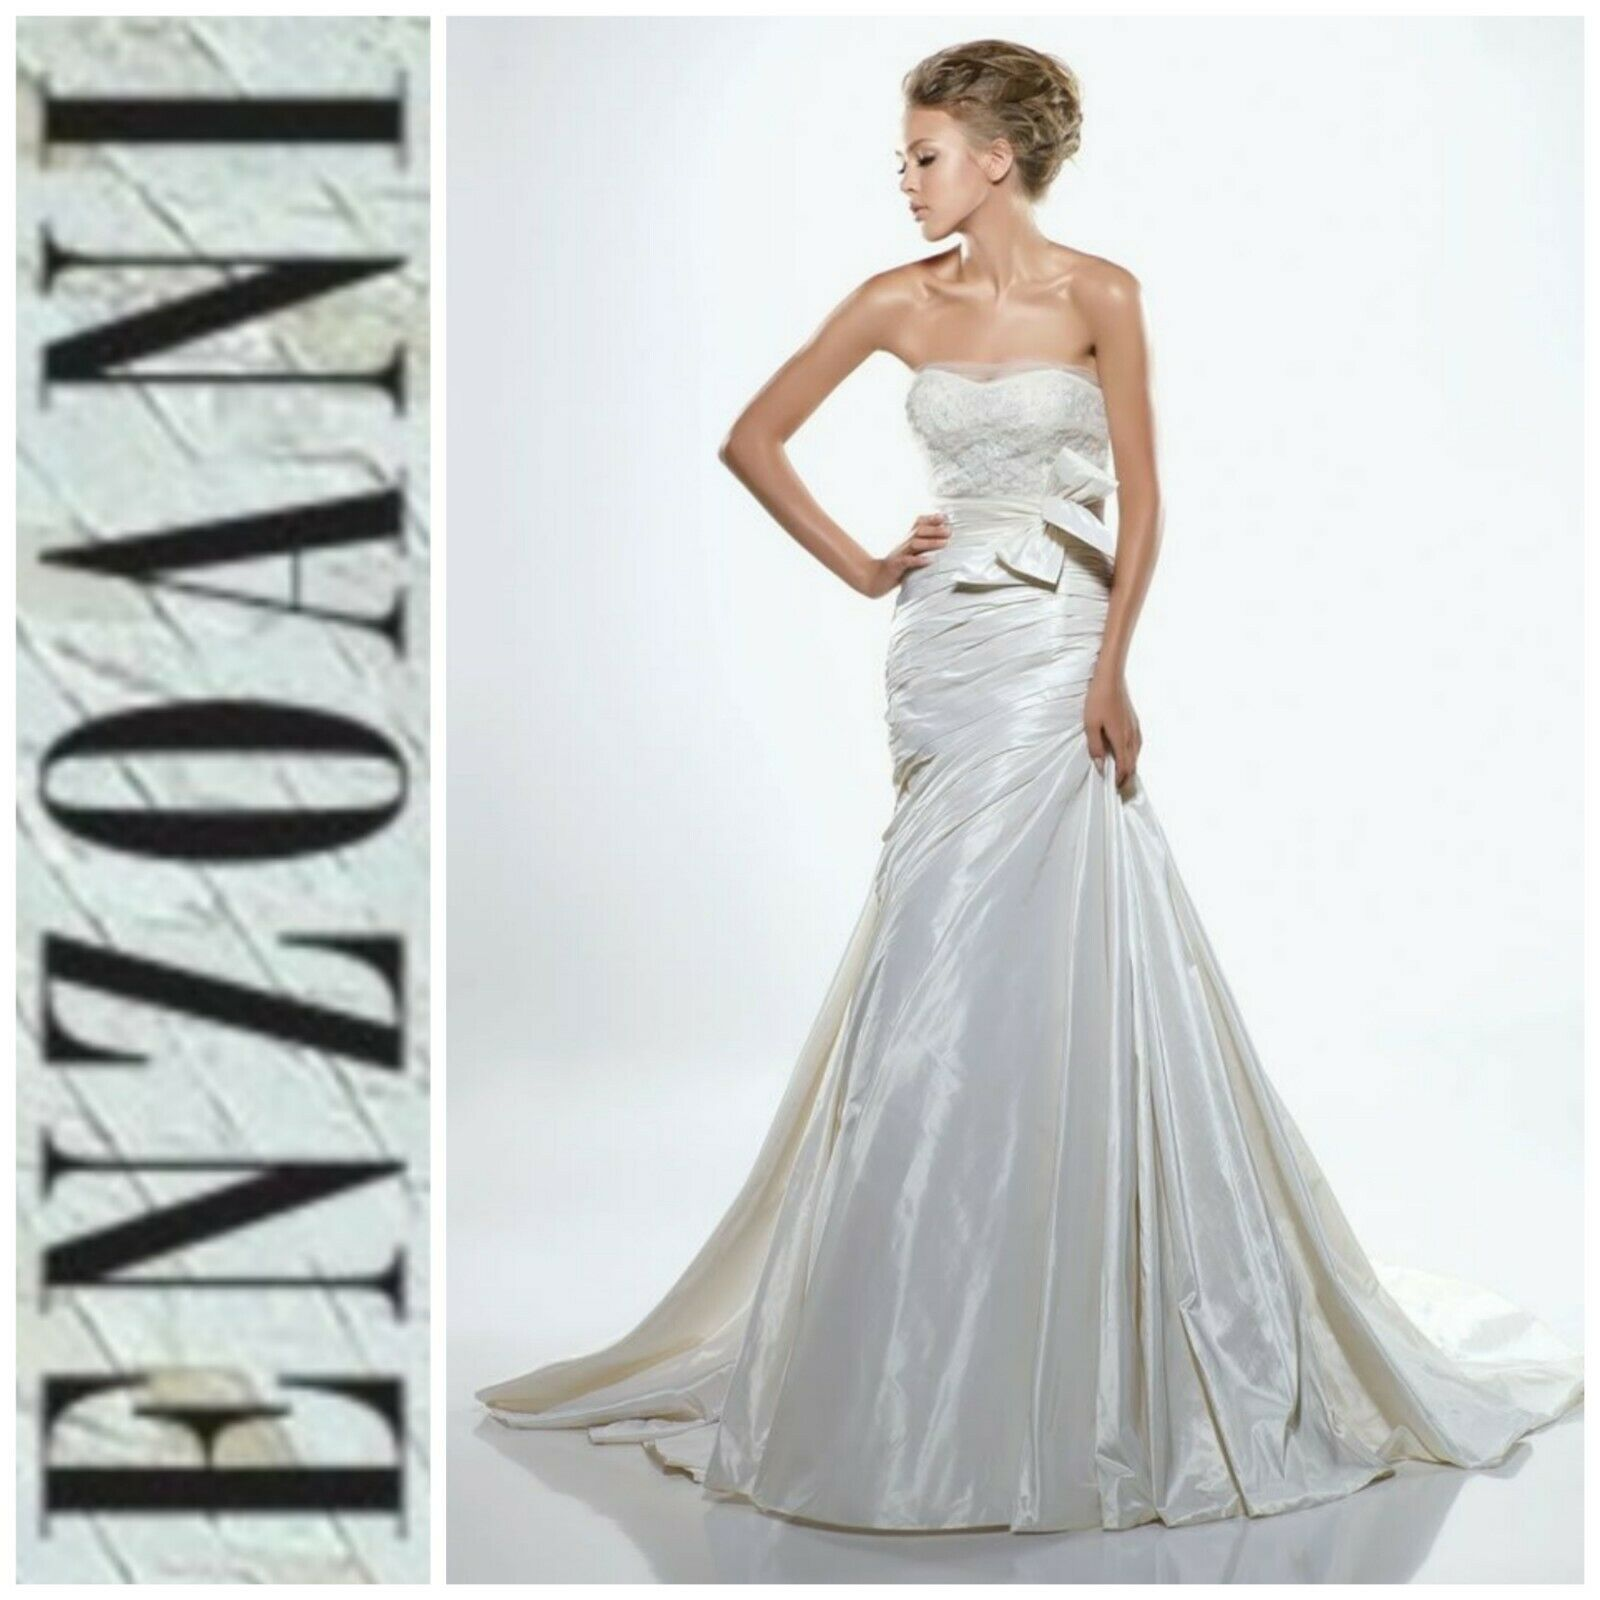 NEW! Enzoani Ivory White Dominique Designer Wedding Gown Dress A-Line 10